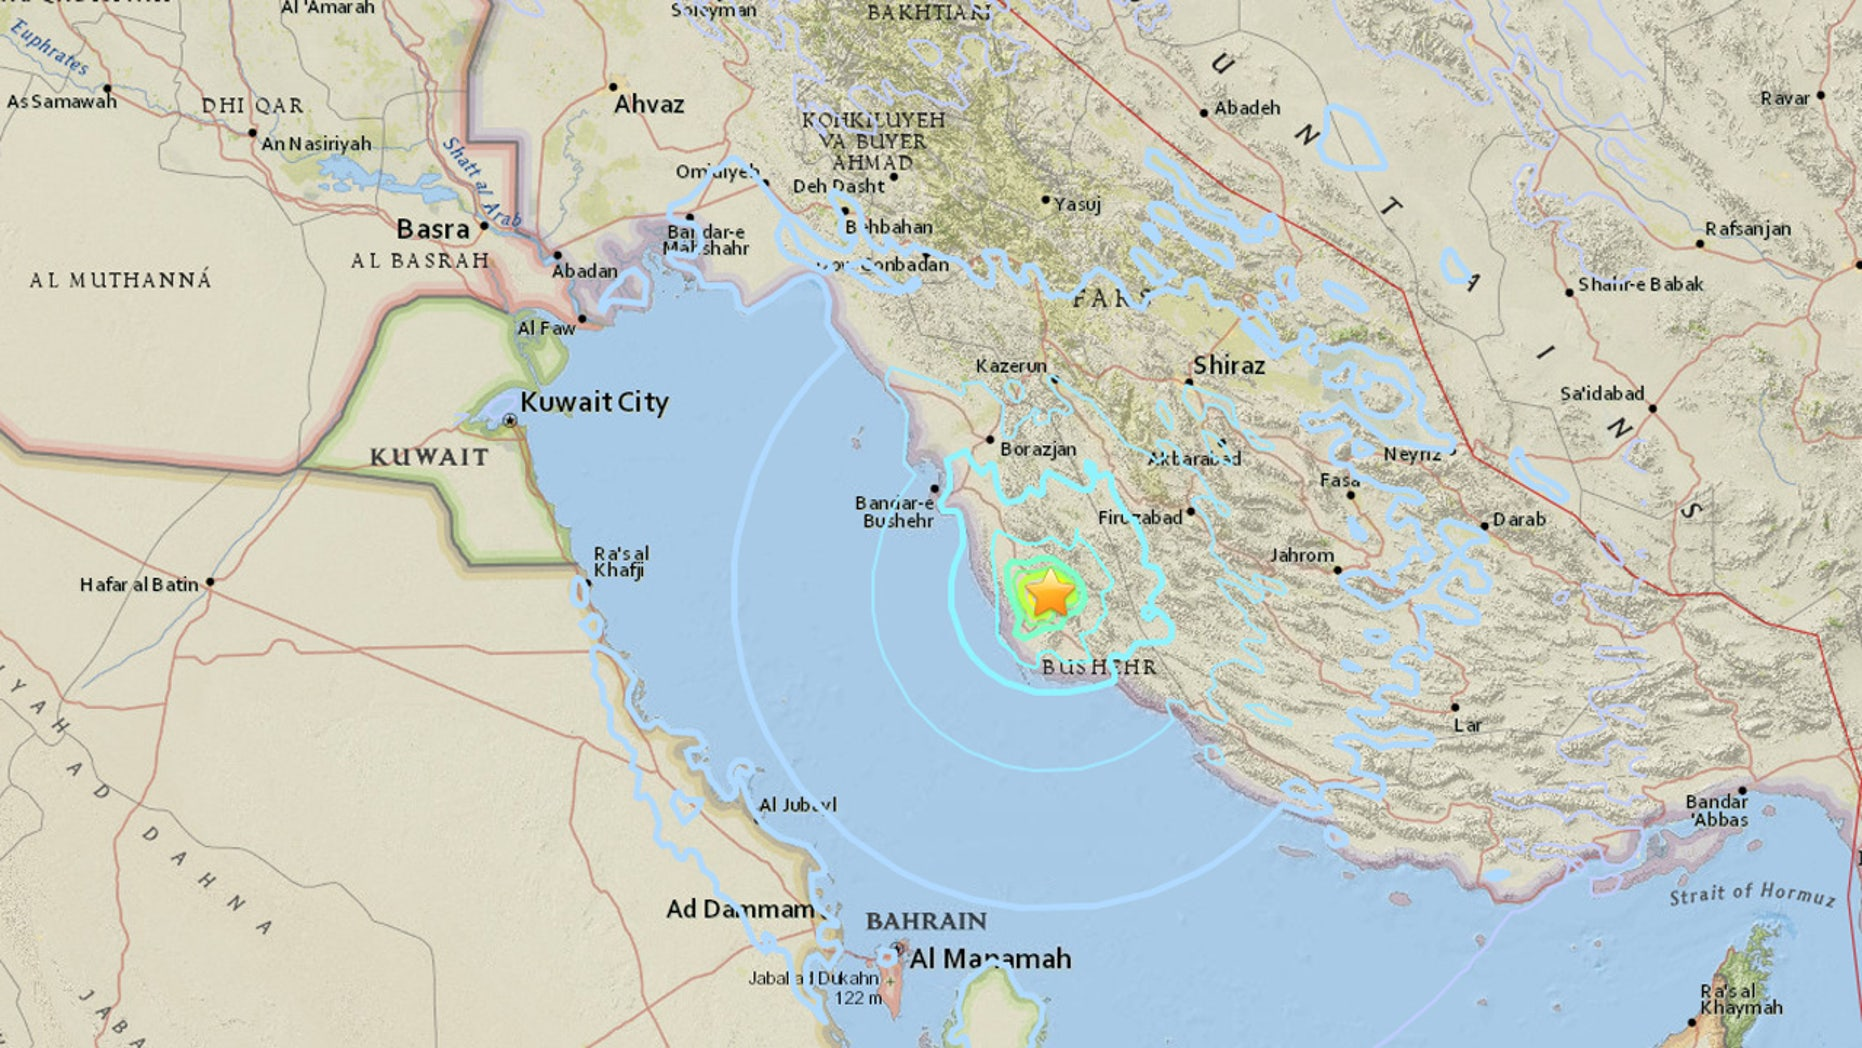 The U.S. Geological Survey said the magnitude 5.5 earthquake struck about 60 miles east of Bushehr.